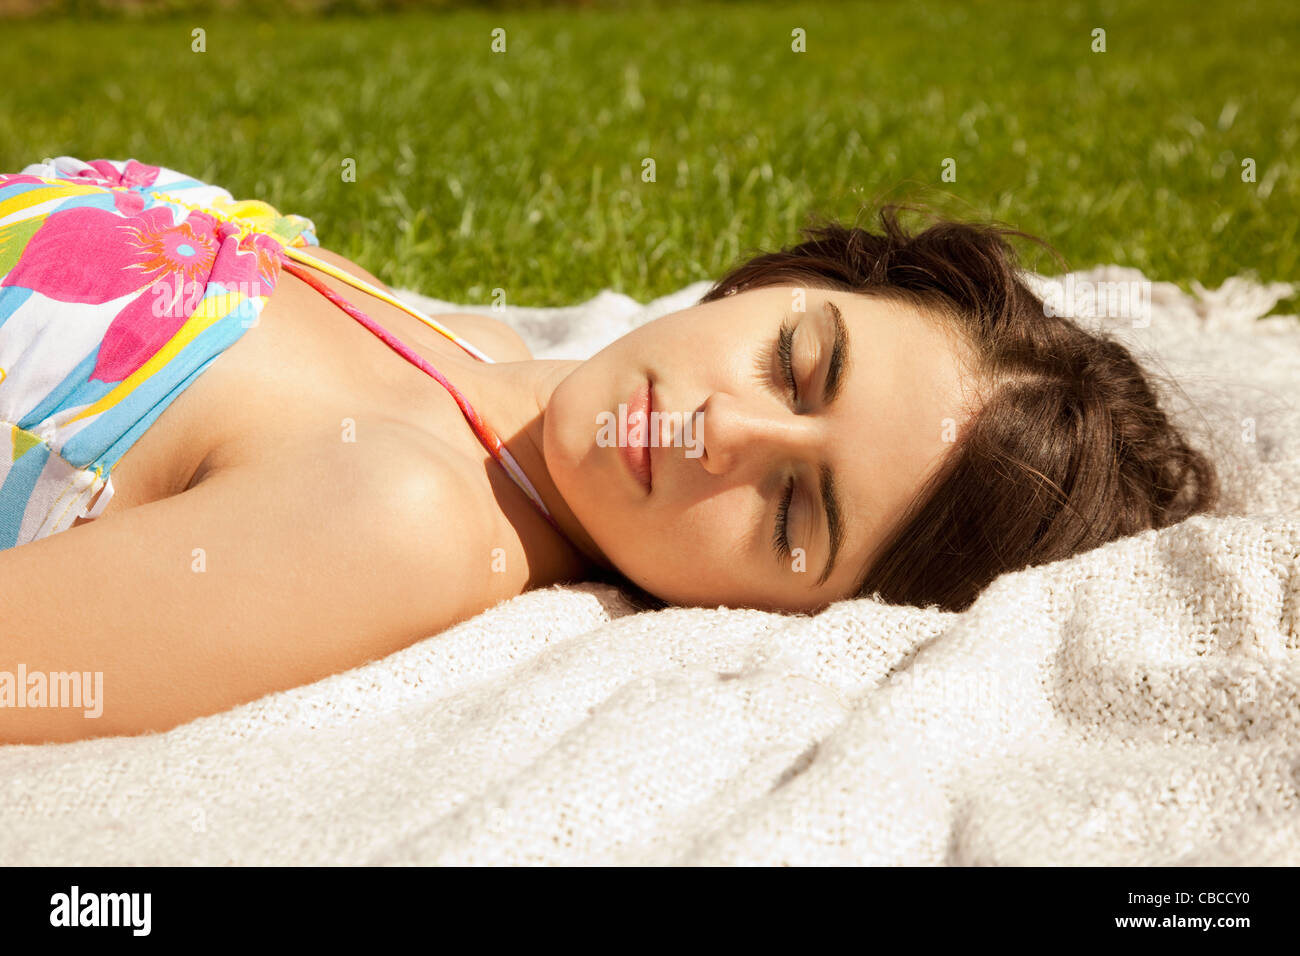 Woman sleeping on blanket in grass - Stock Image